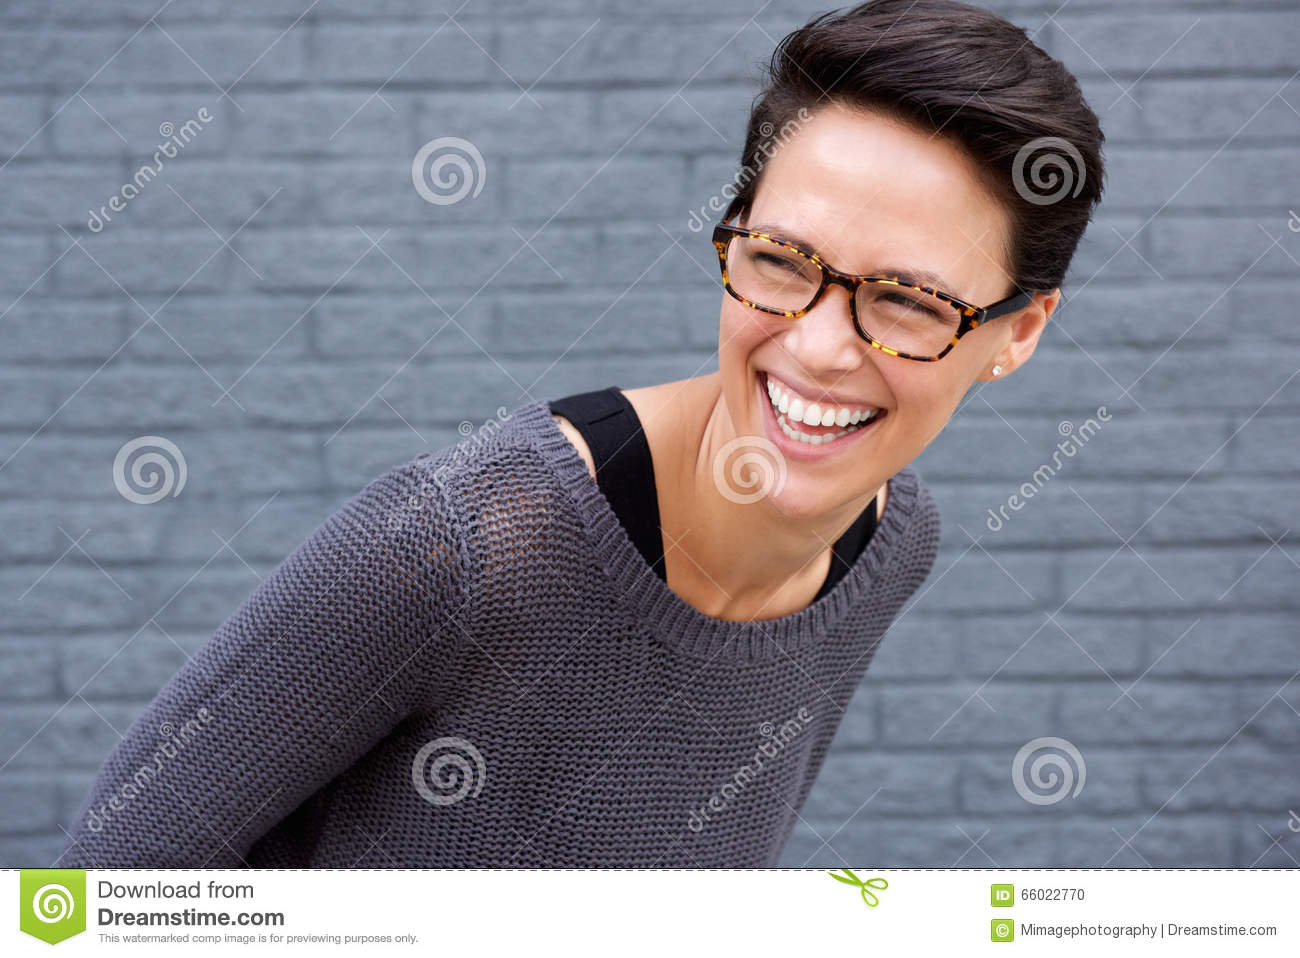 Close up portrait of a young woman laughing with glasses